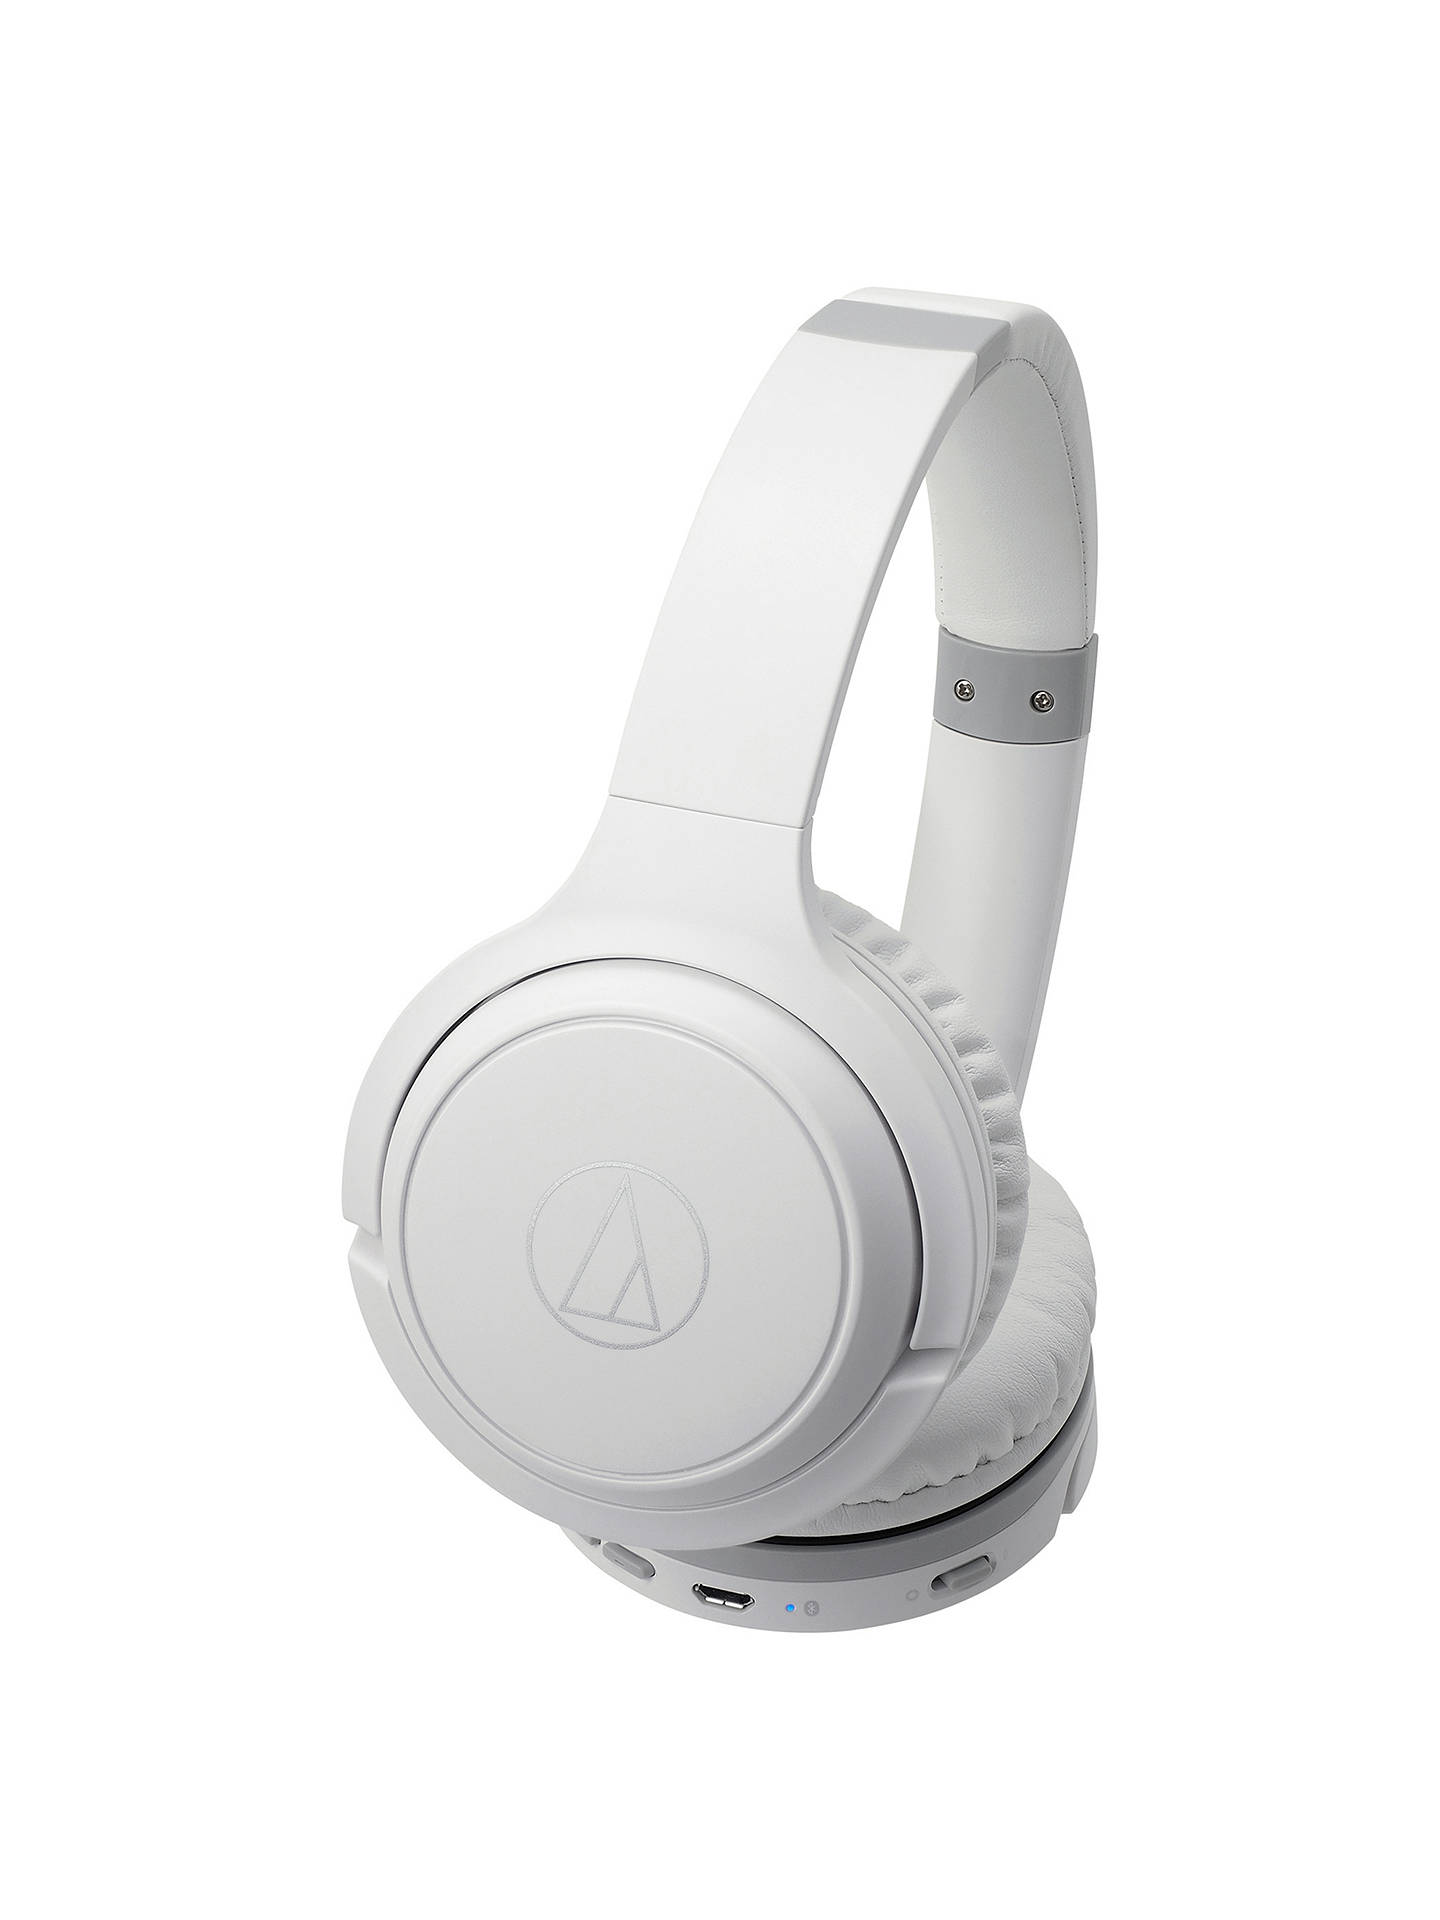 Buy Audio-Technica ATH-S200BT Wireless Bluetooth On-Ear Headphones, White Online at johnlewis.com